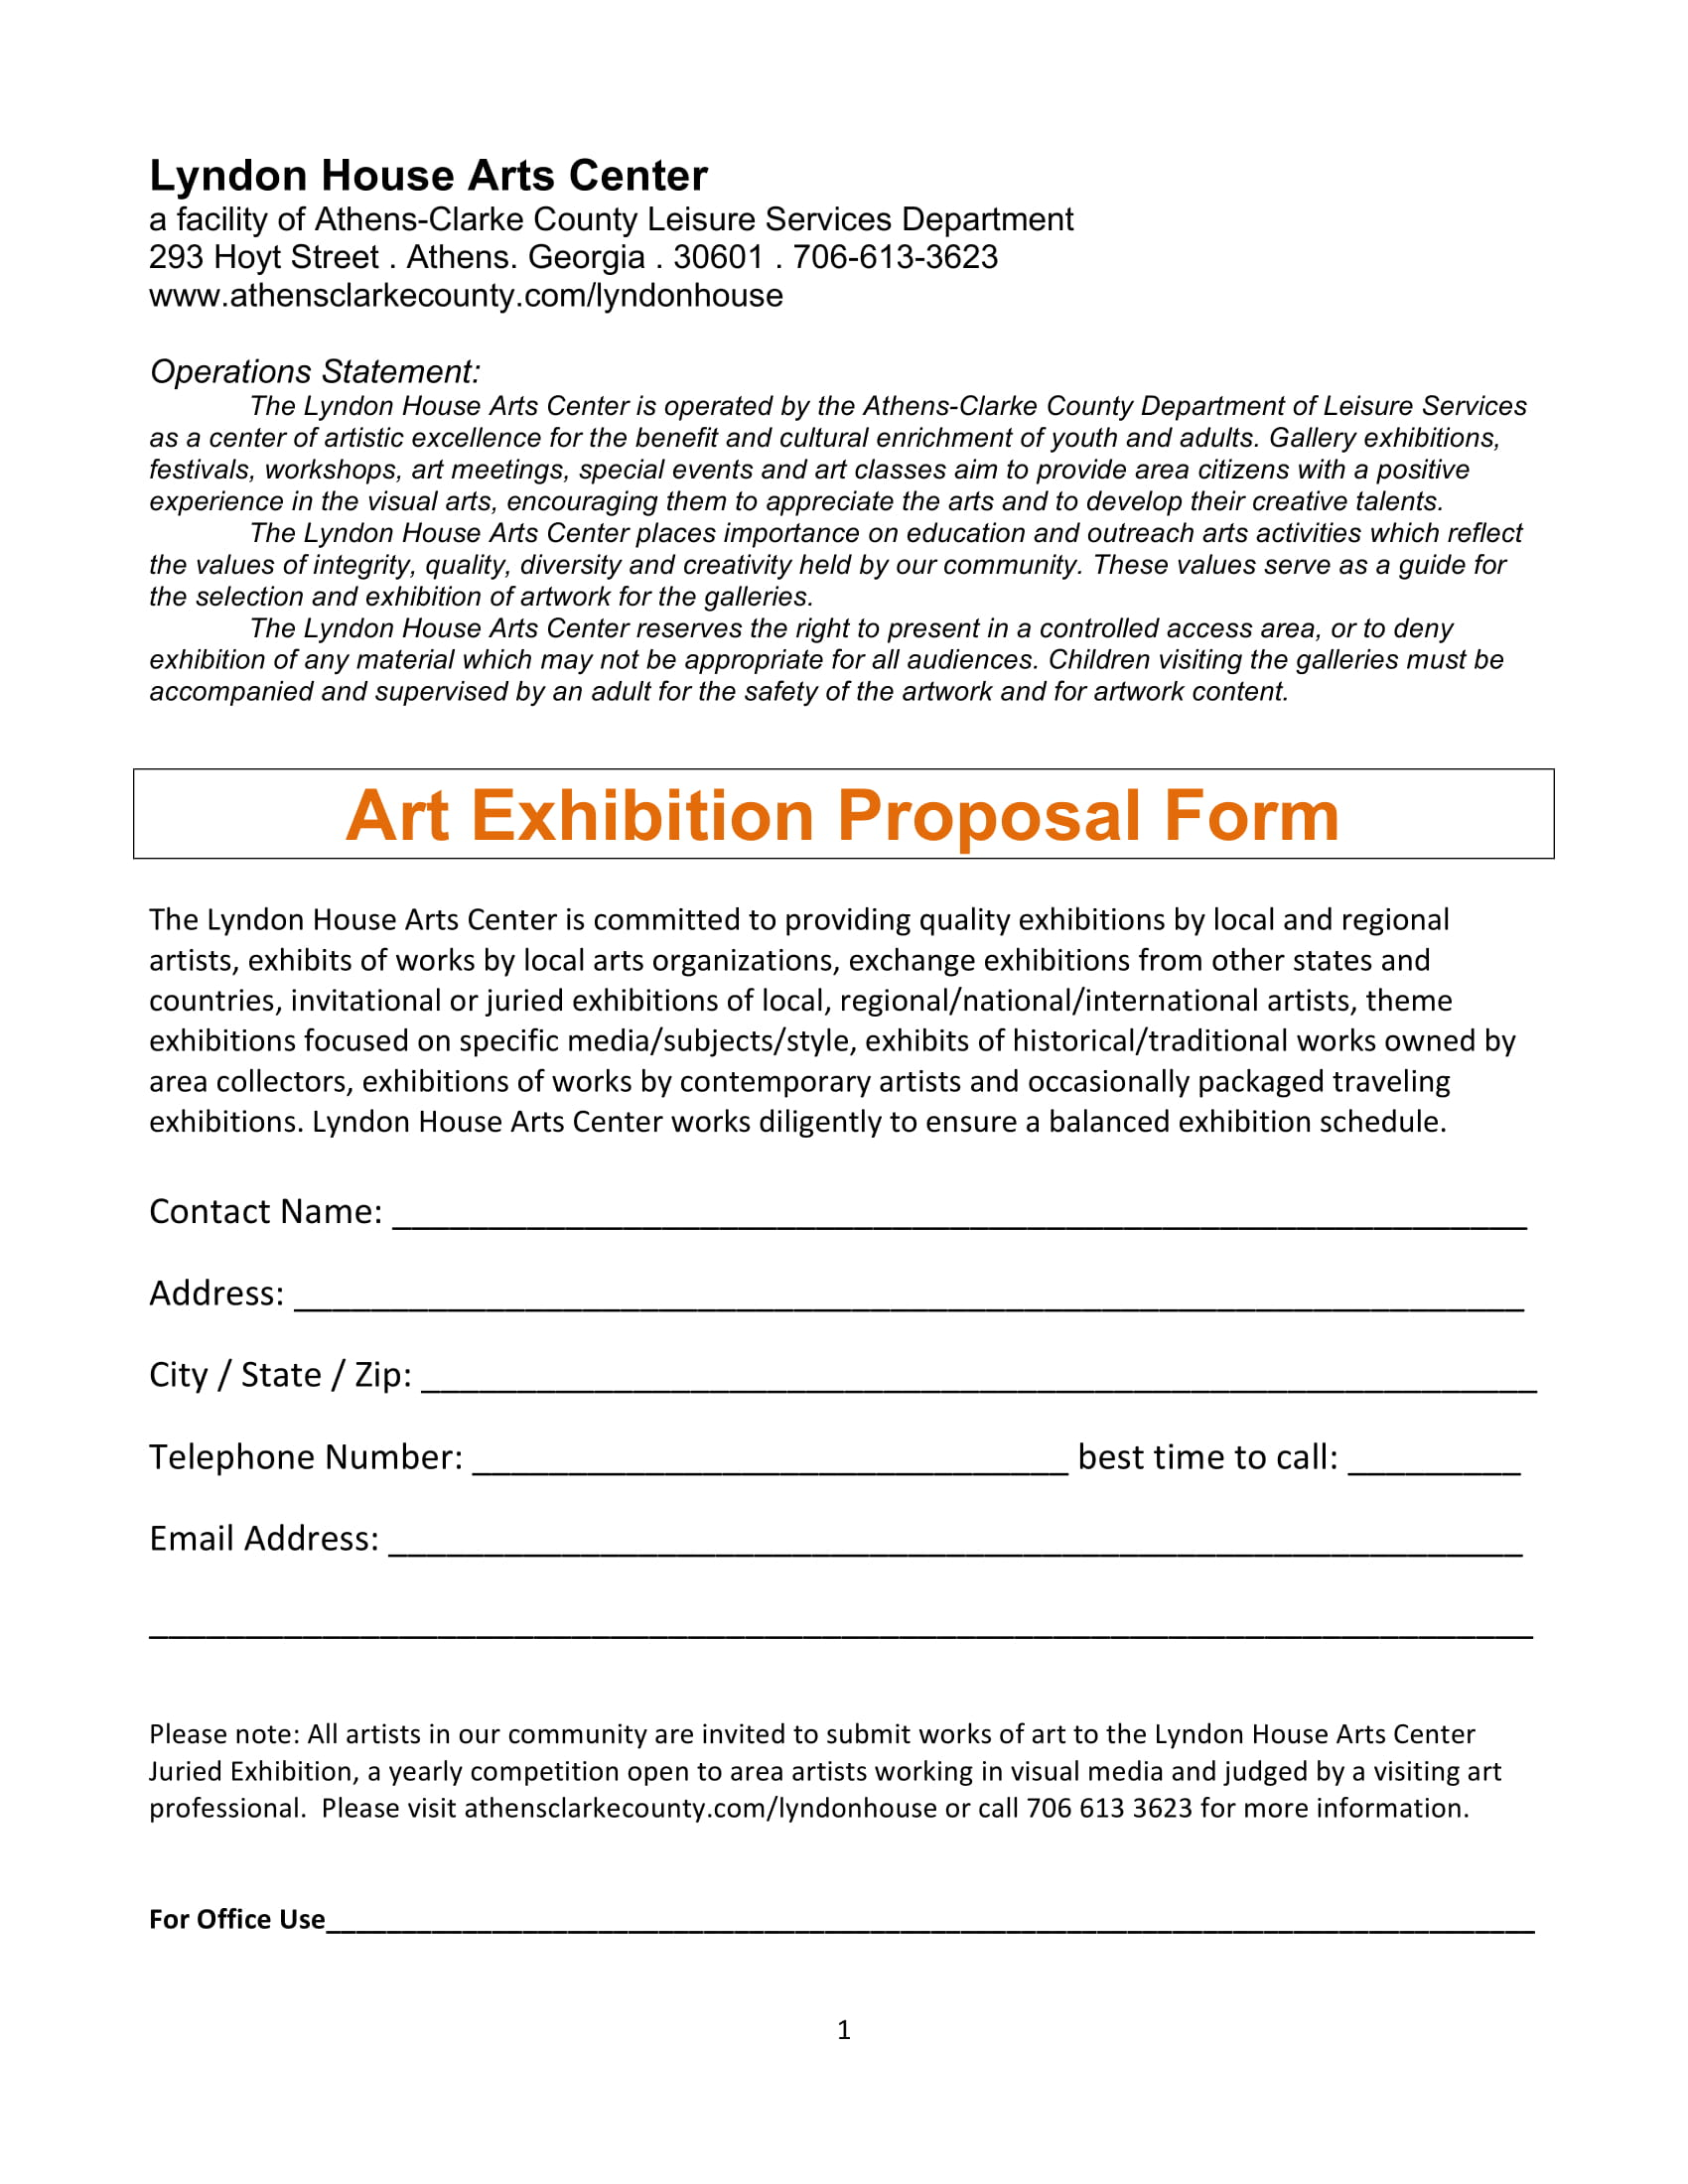 10 Exhibition Proposal Examples Doc Pdf